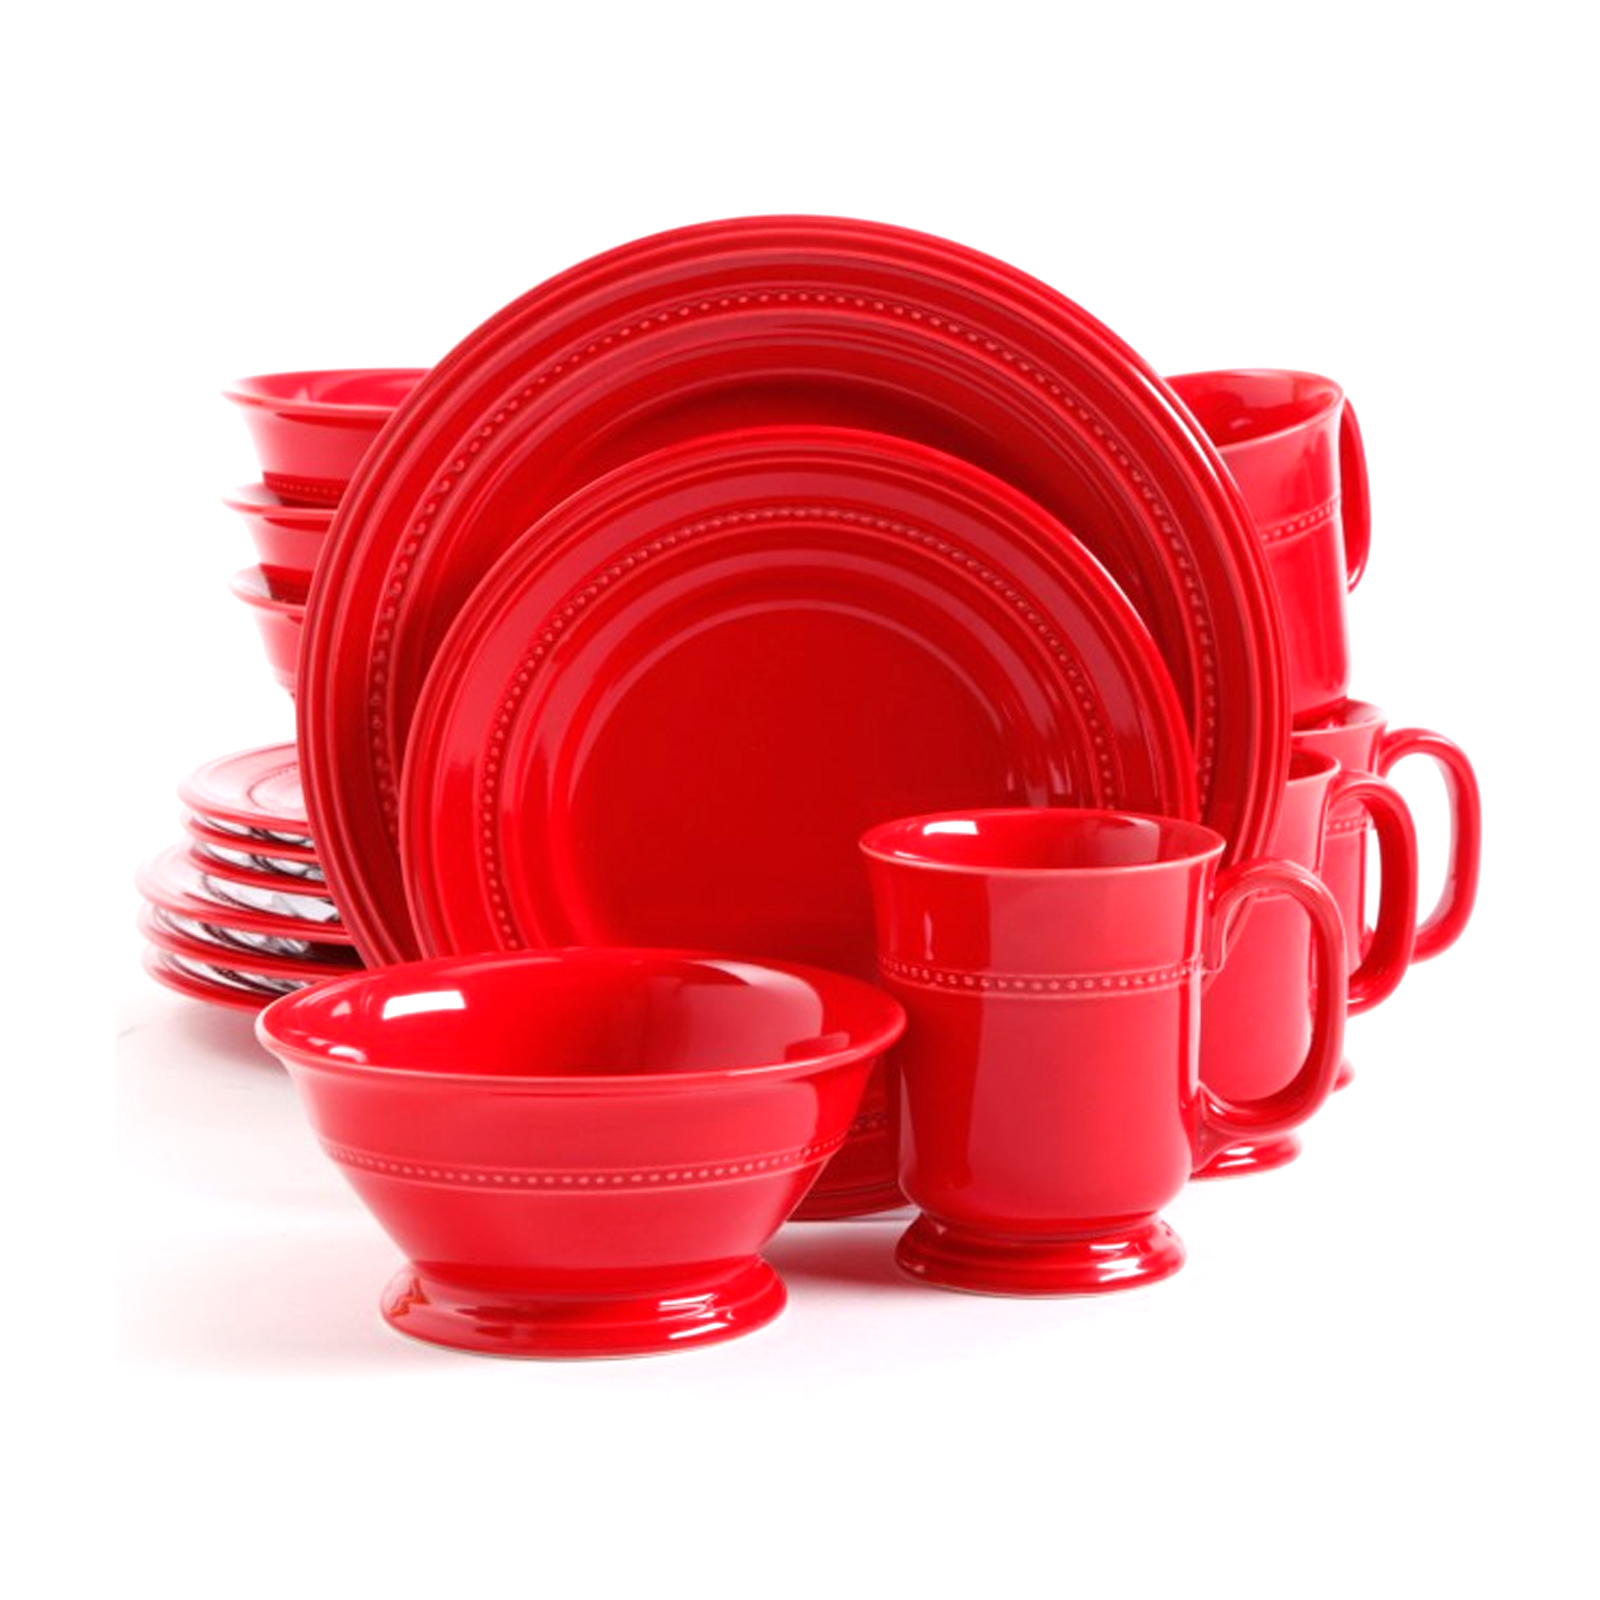 sc 1 st  Walmart.com & Gibson Barberware 16 Pc Dinnerware Set - Red - Walmart.com